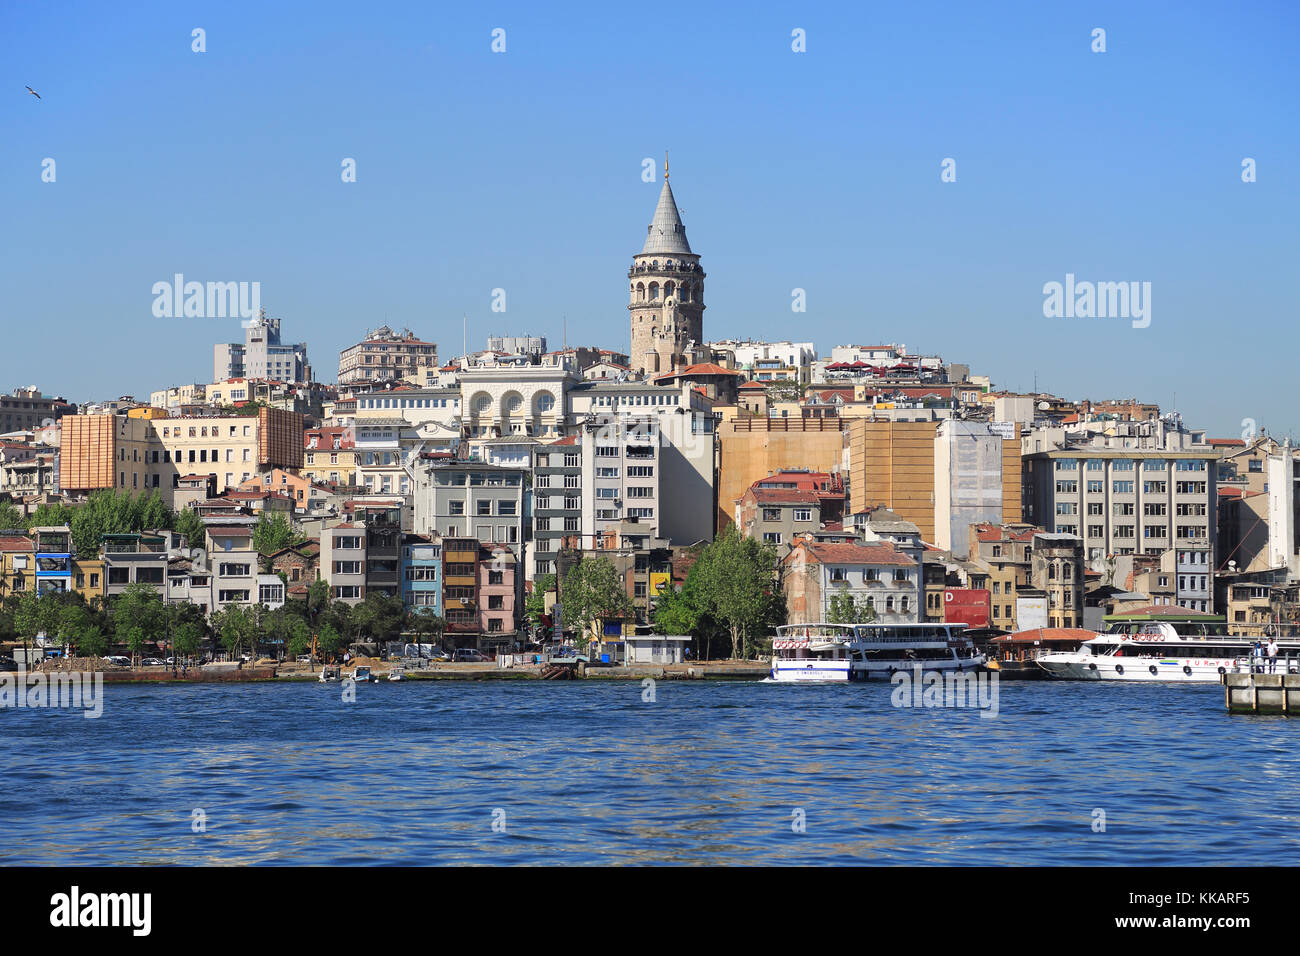 Galata Tower, Golden Horn, Beyoglu District, Istanbul, Turkey, Europe - Stock Image